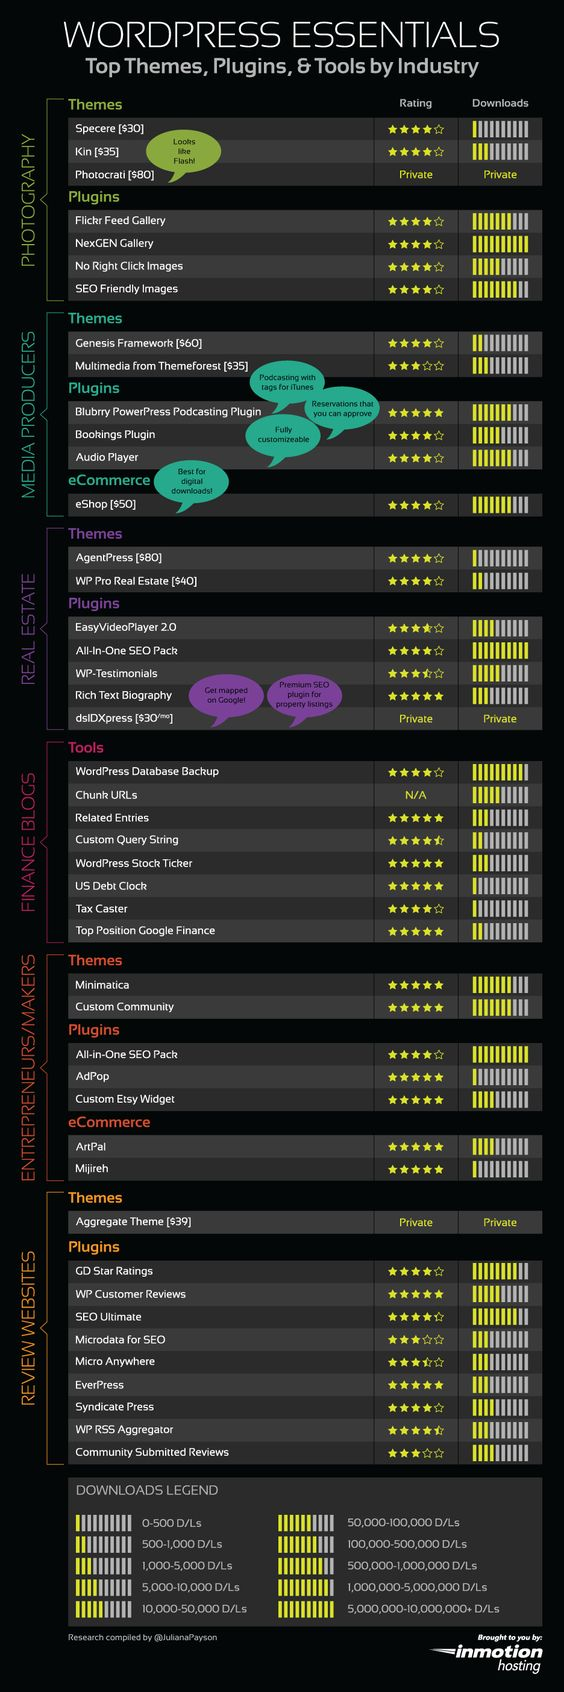 WordPress Essentials, Top Themes, Plugins and Tools by Industry #Infographic